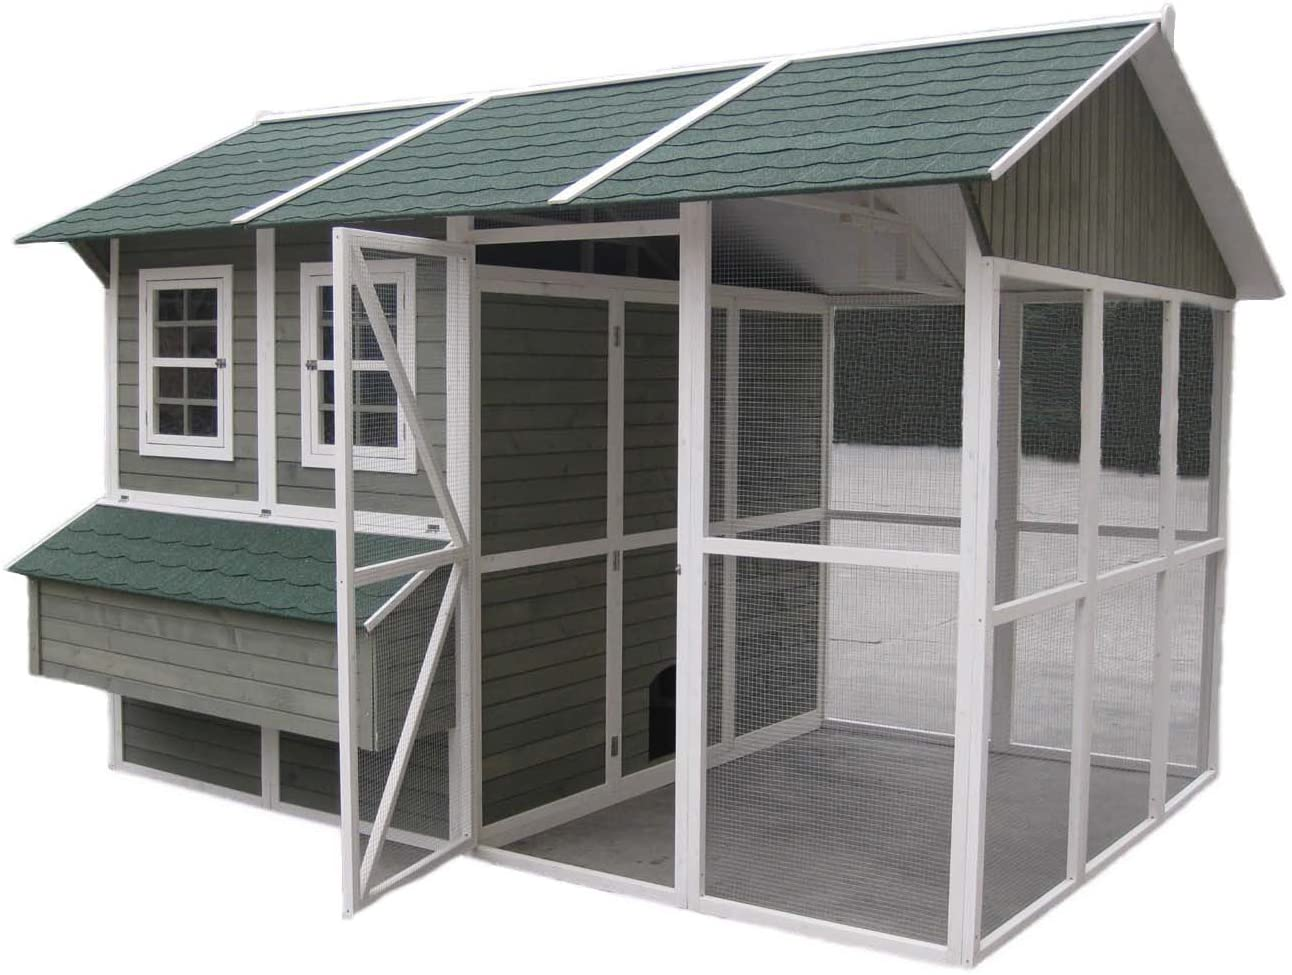 This is an example of a fancy chicken coop!